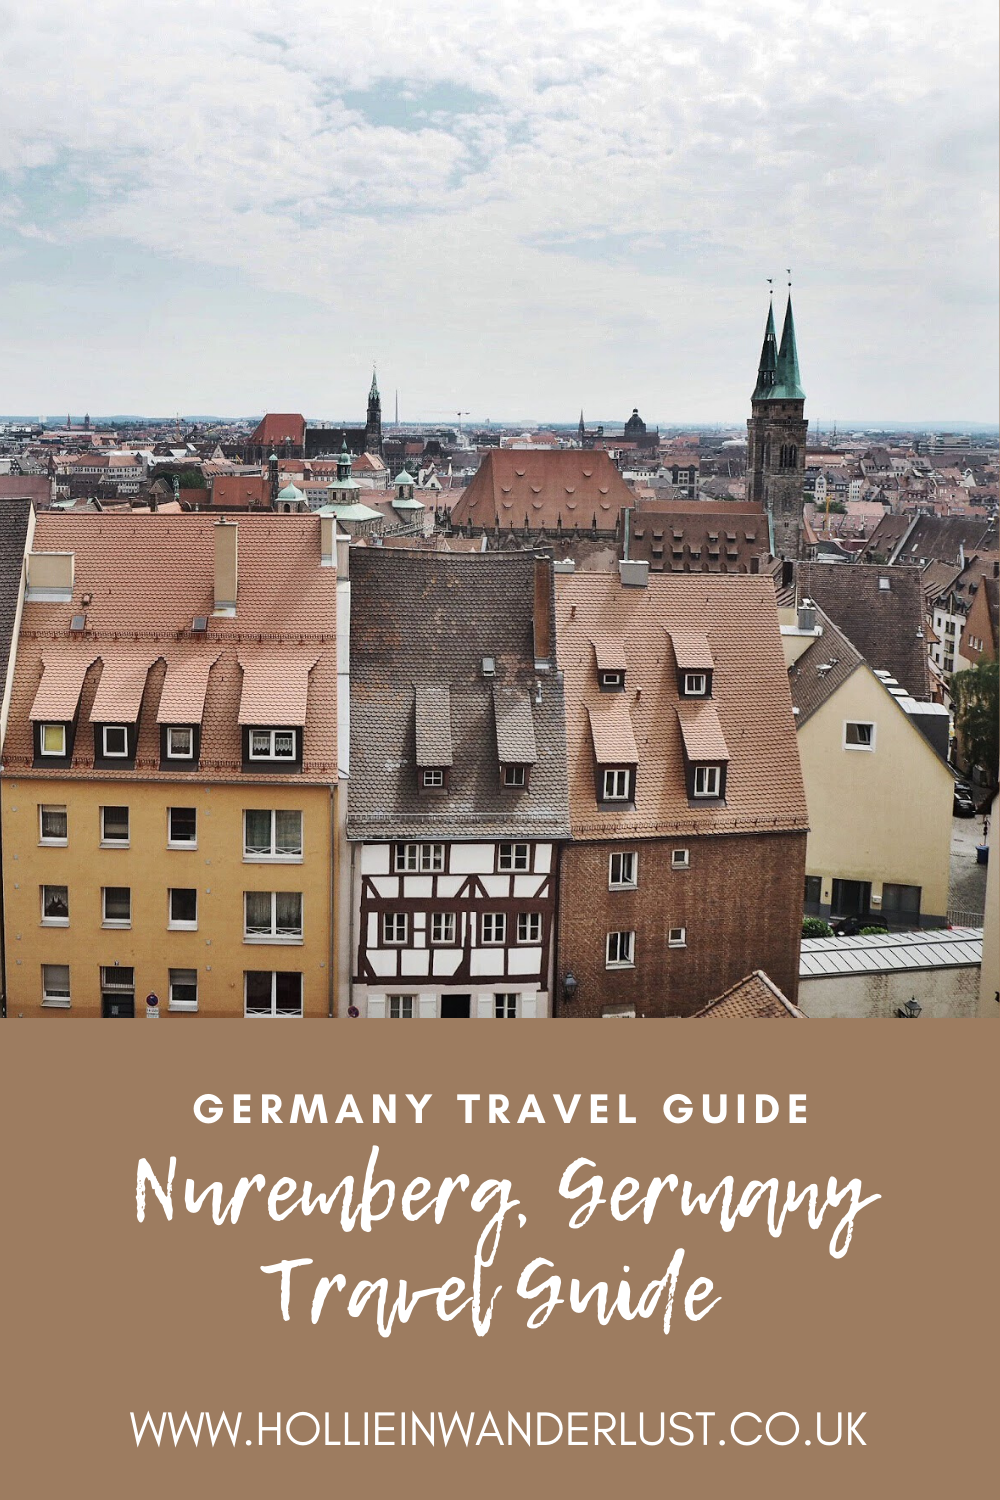 Things to see and do in Nuremberg, Germany | Germany Travel Guide | What to do in Nuremberg, Germany | Bavaria Germany Travel Guide